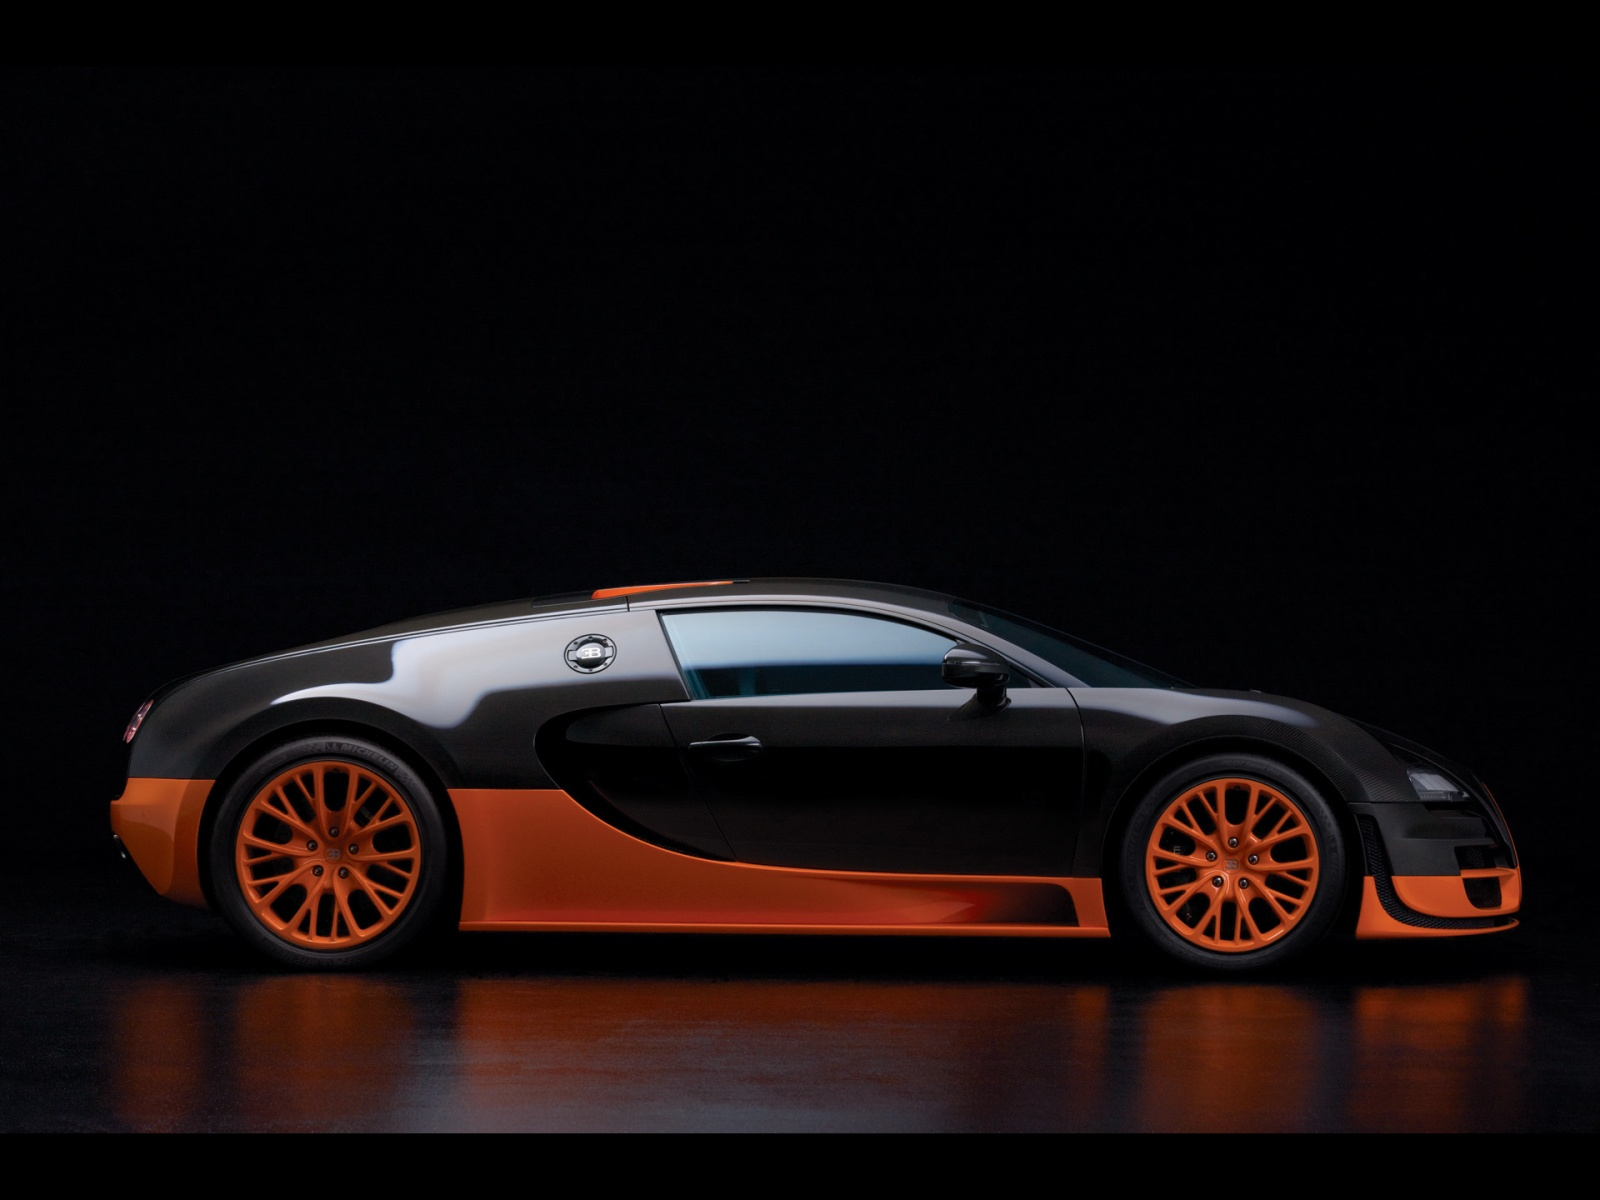 Bugatti Veyron Super Sport Full Hd Wallpaper: Wallpapers Hd For Mac: The Best Bugatti Veyron Super Sport